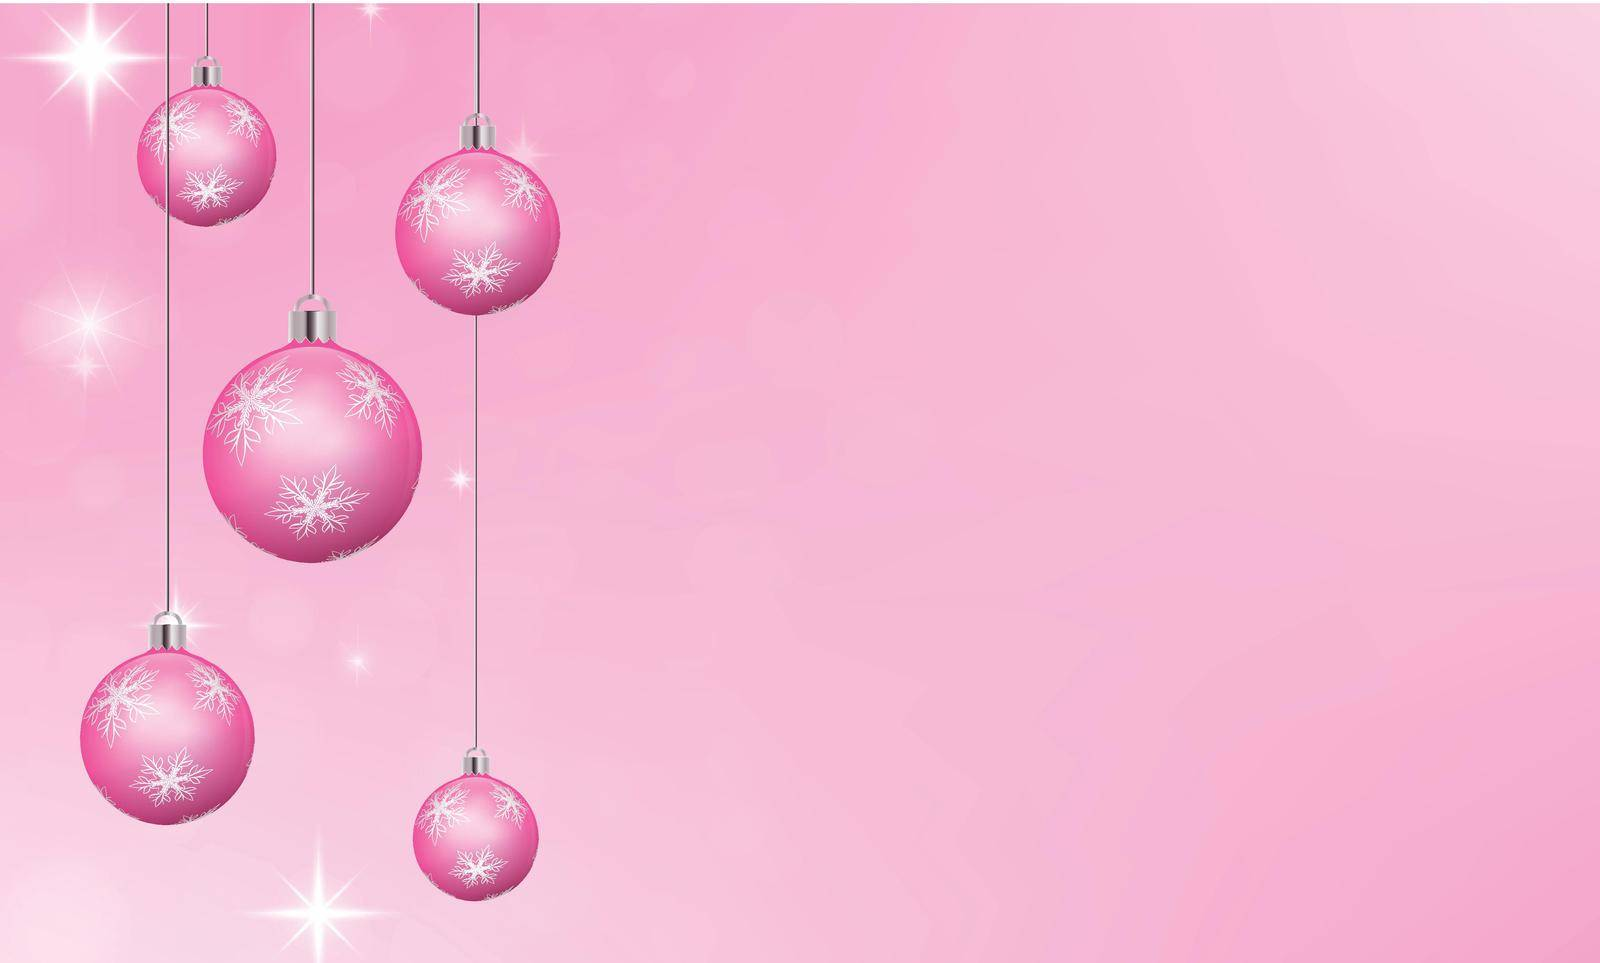 Pink christmas background. Baubles decorated with white snowflakes. Shimmering effect and empty space to copy text. Winter festive background. 3D illustration.